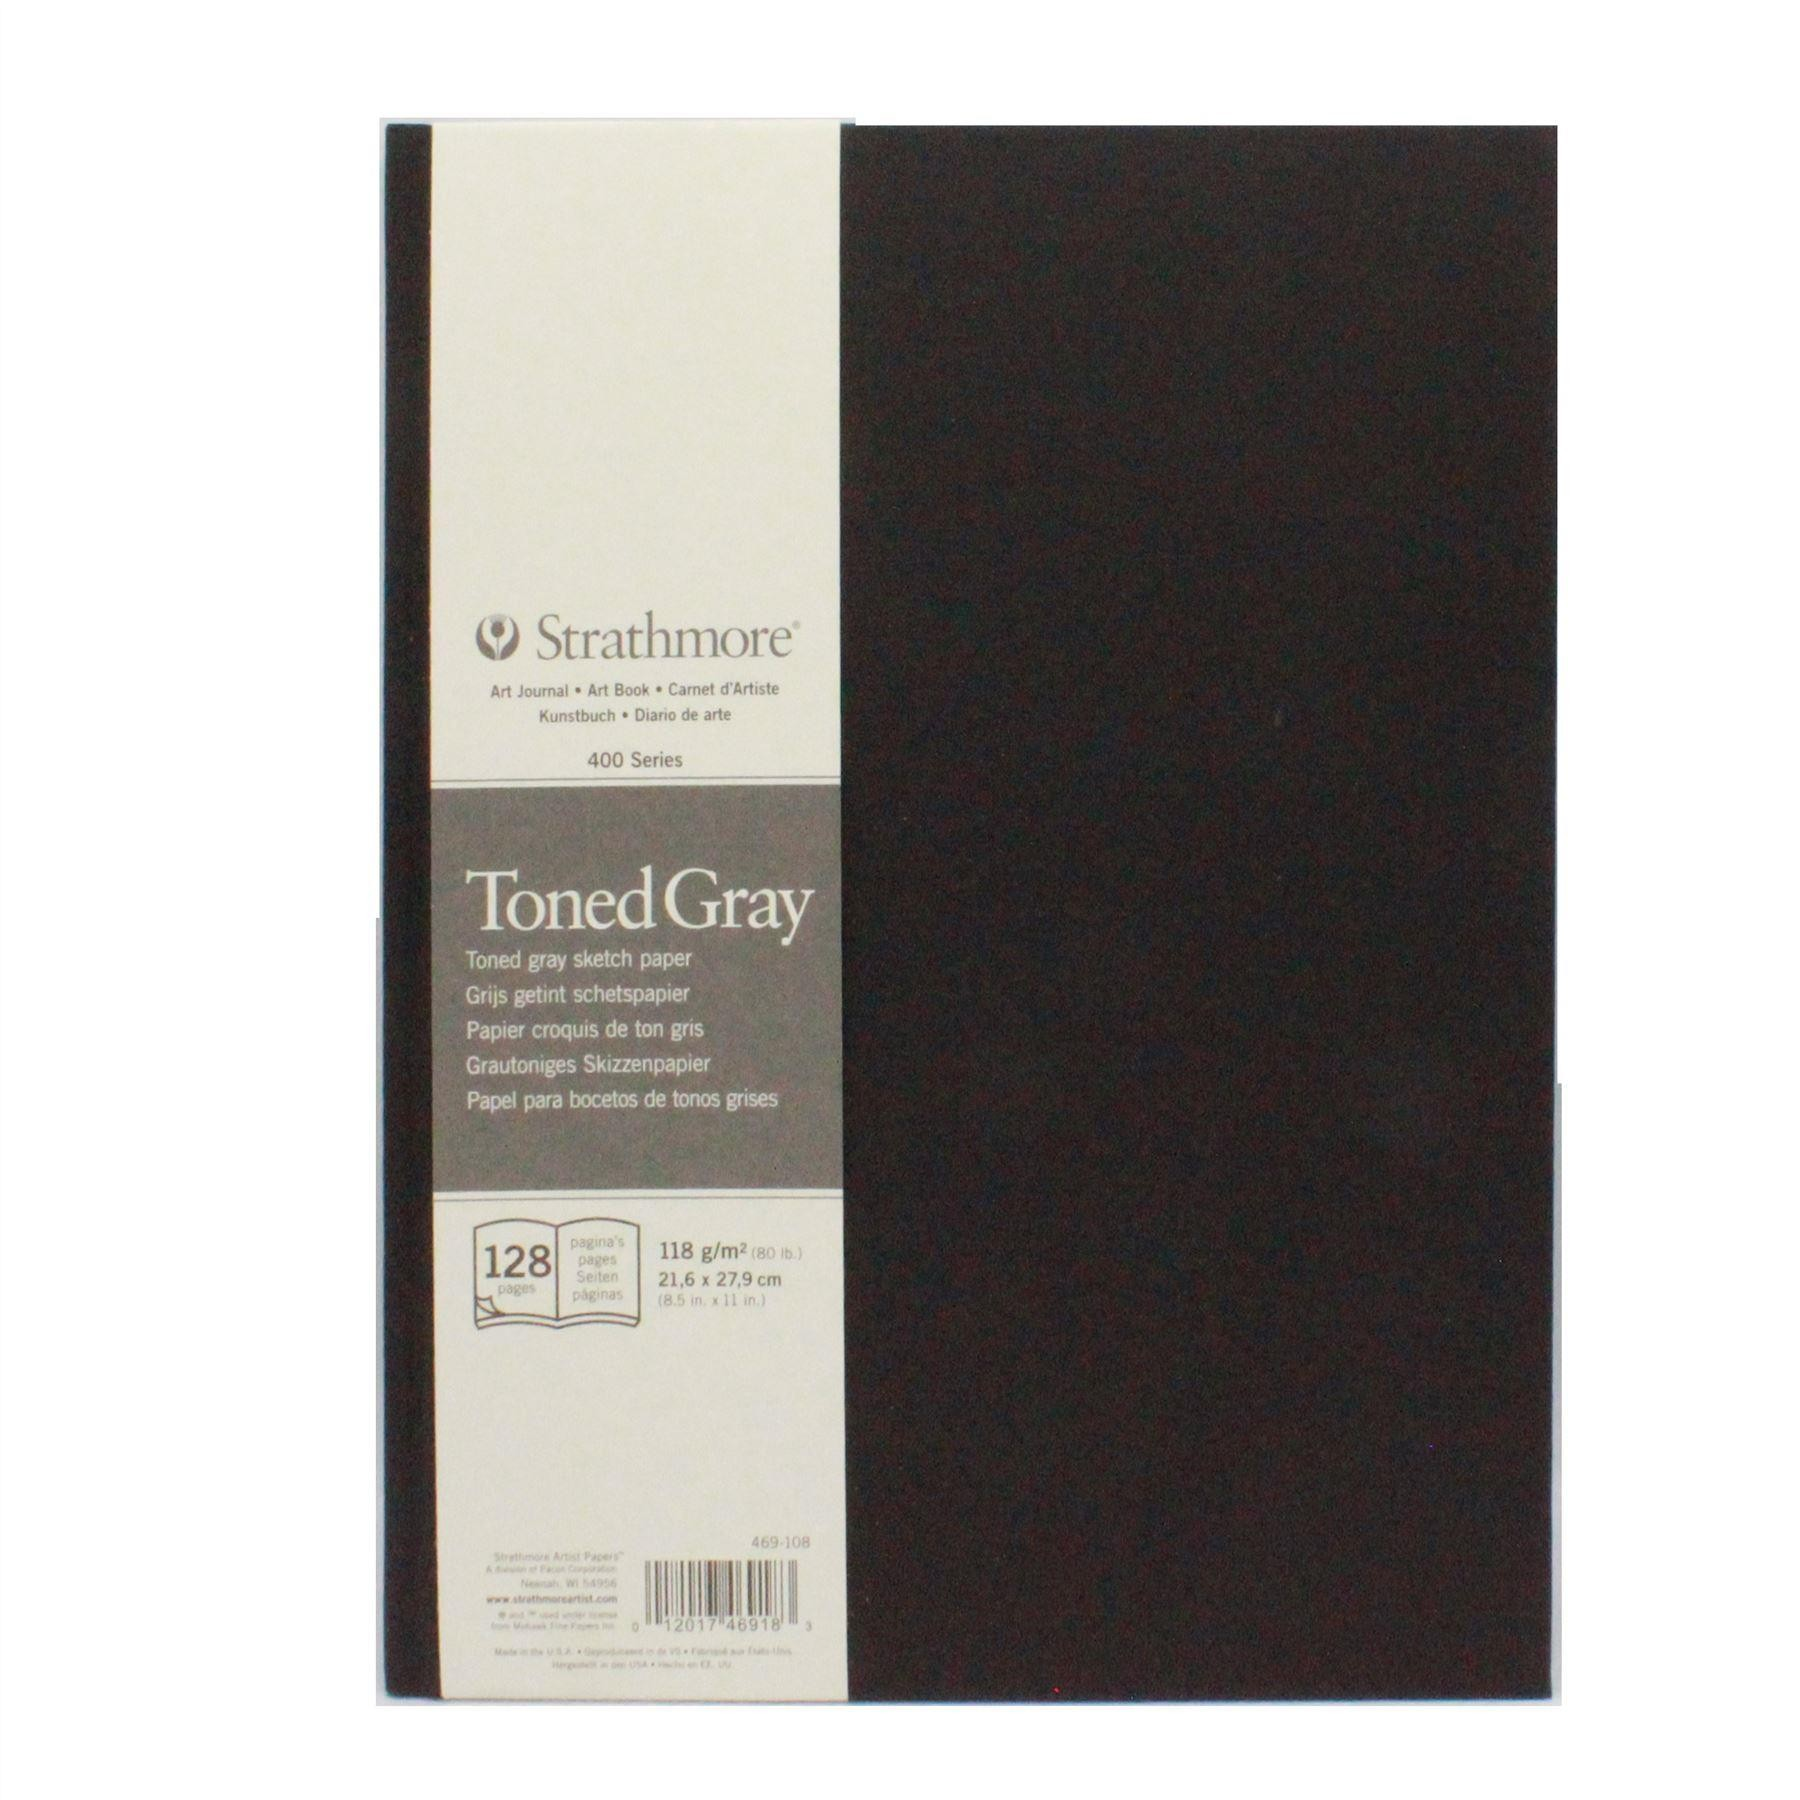 Strathmore 400 toned gray art journal grey art sketch book pad 21,6 x 27.9cm